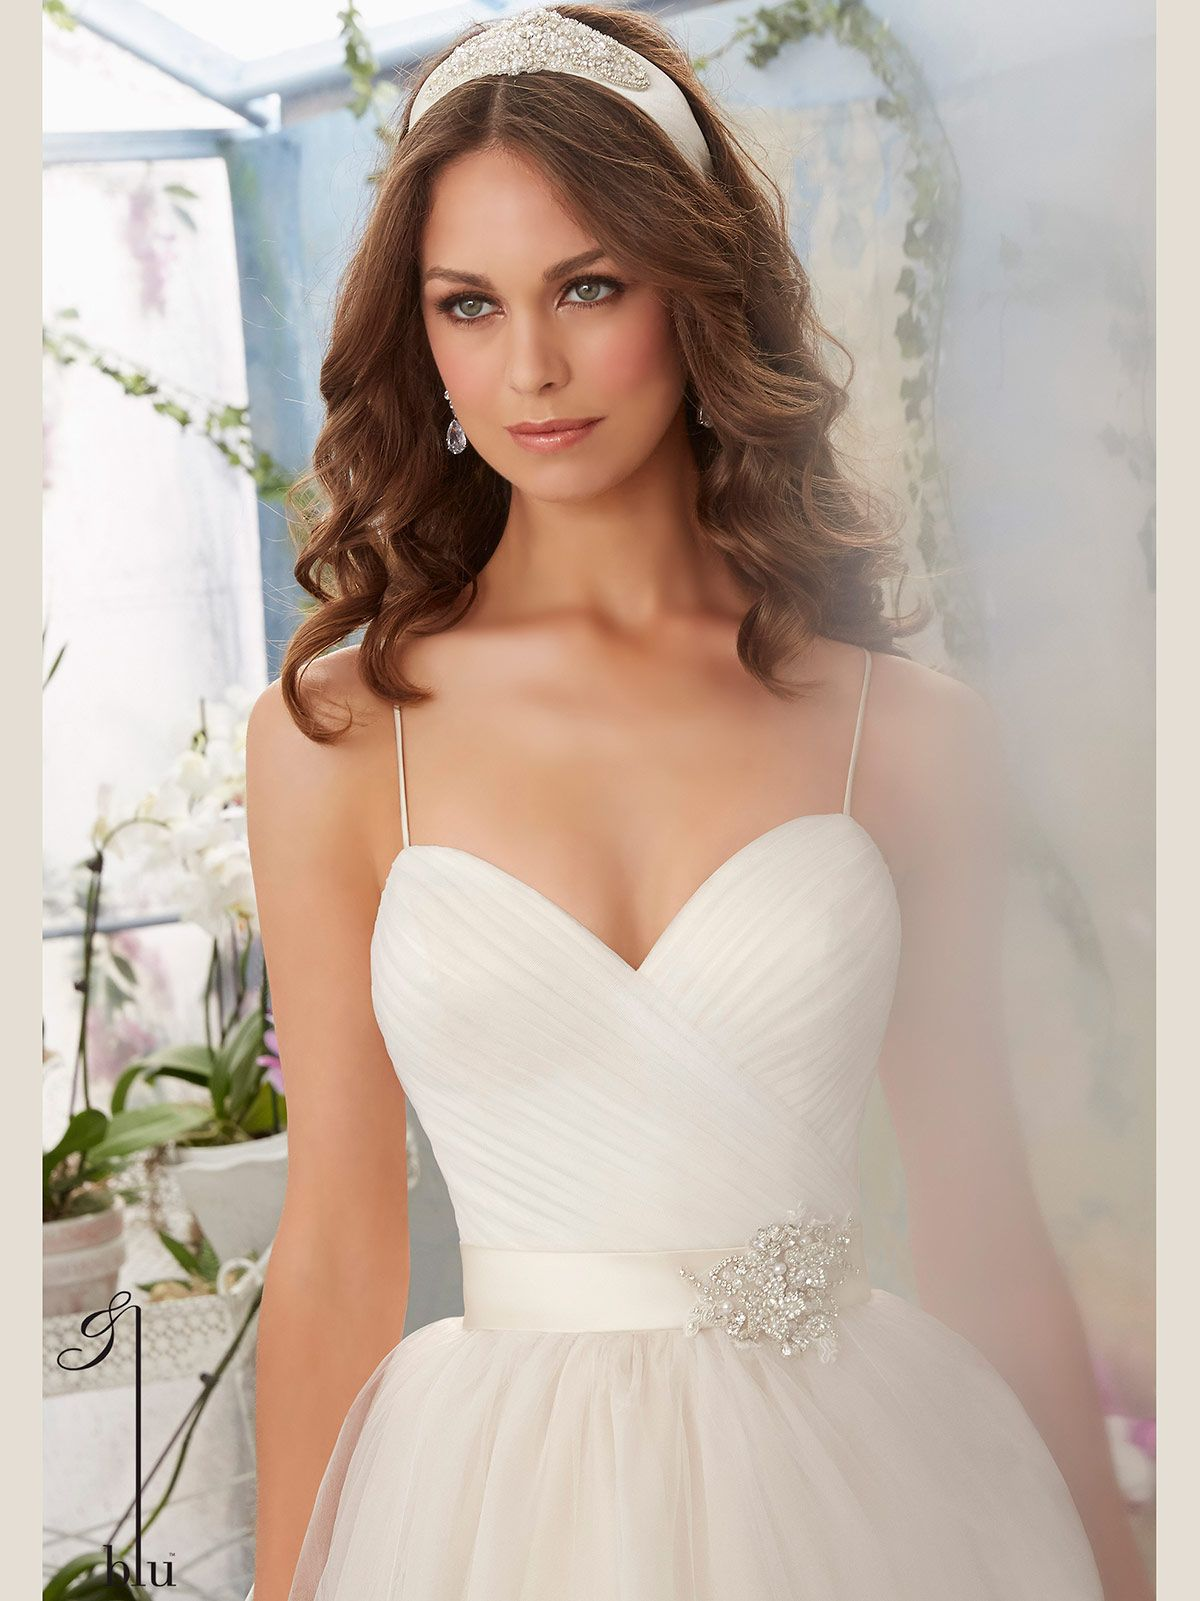 Image result for shoe string strap wedding gown | Fiona | Pinterest ...